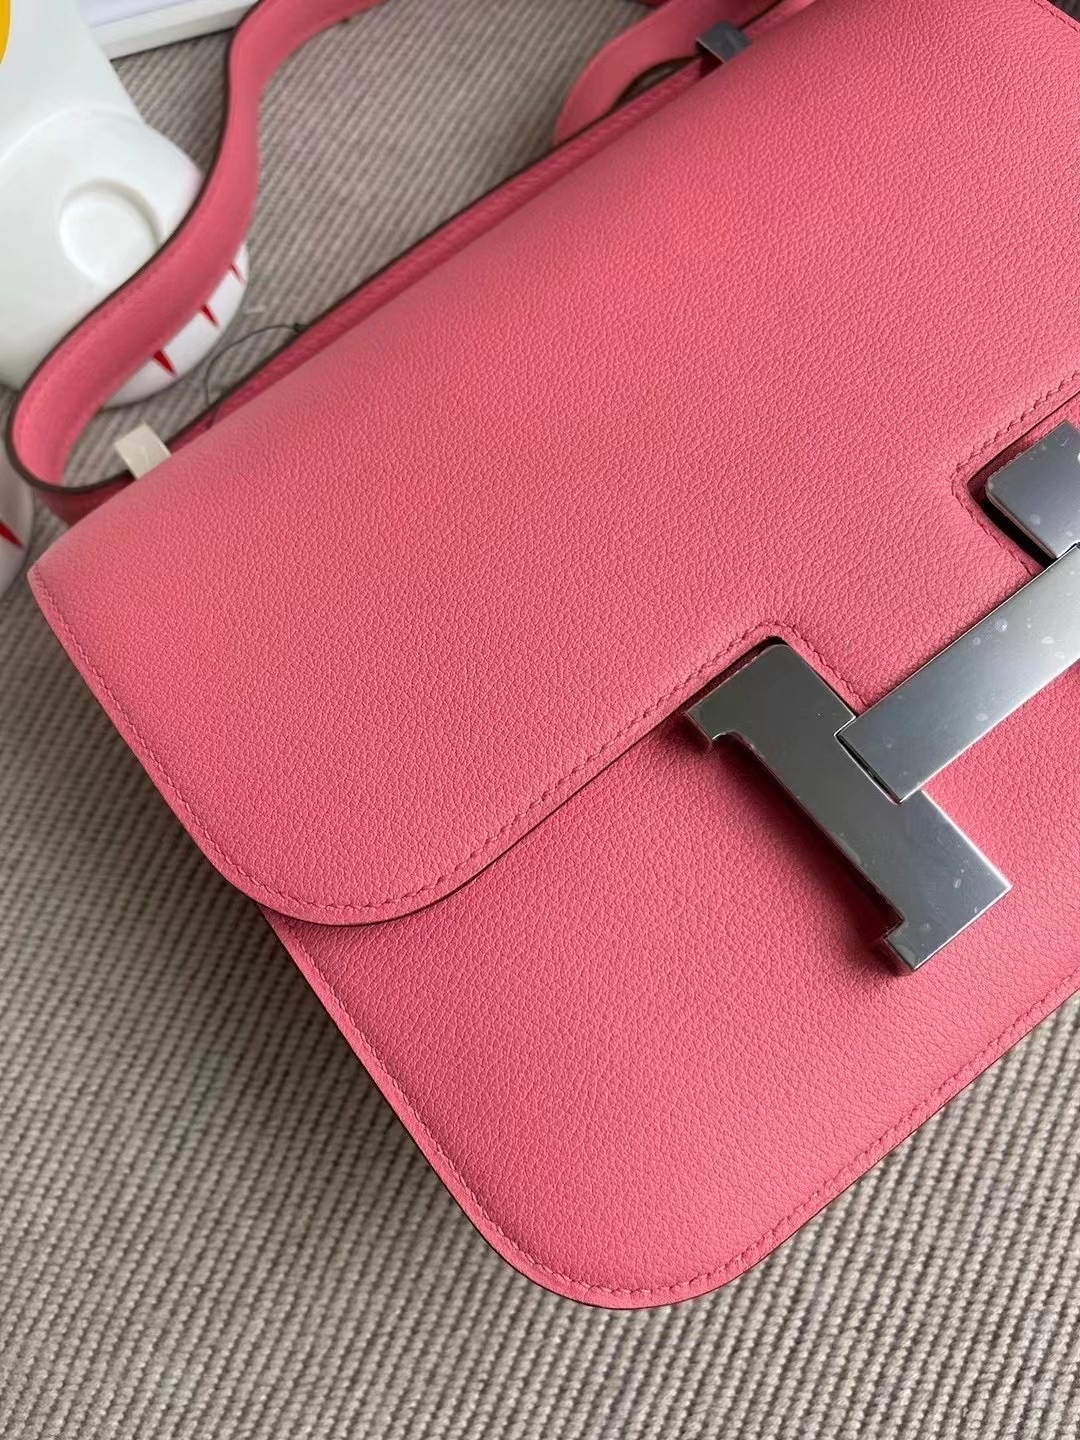 Canada Hermes Constance 19 Everycolor 8W Rose Azalee 新唇膏粉 銀扣